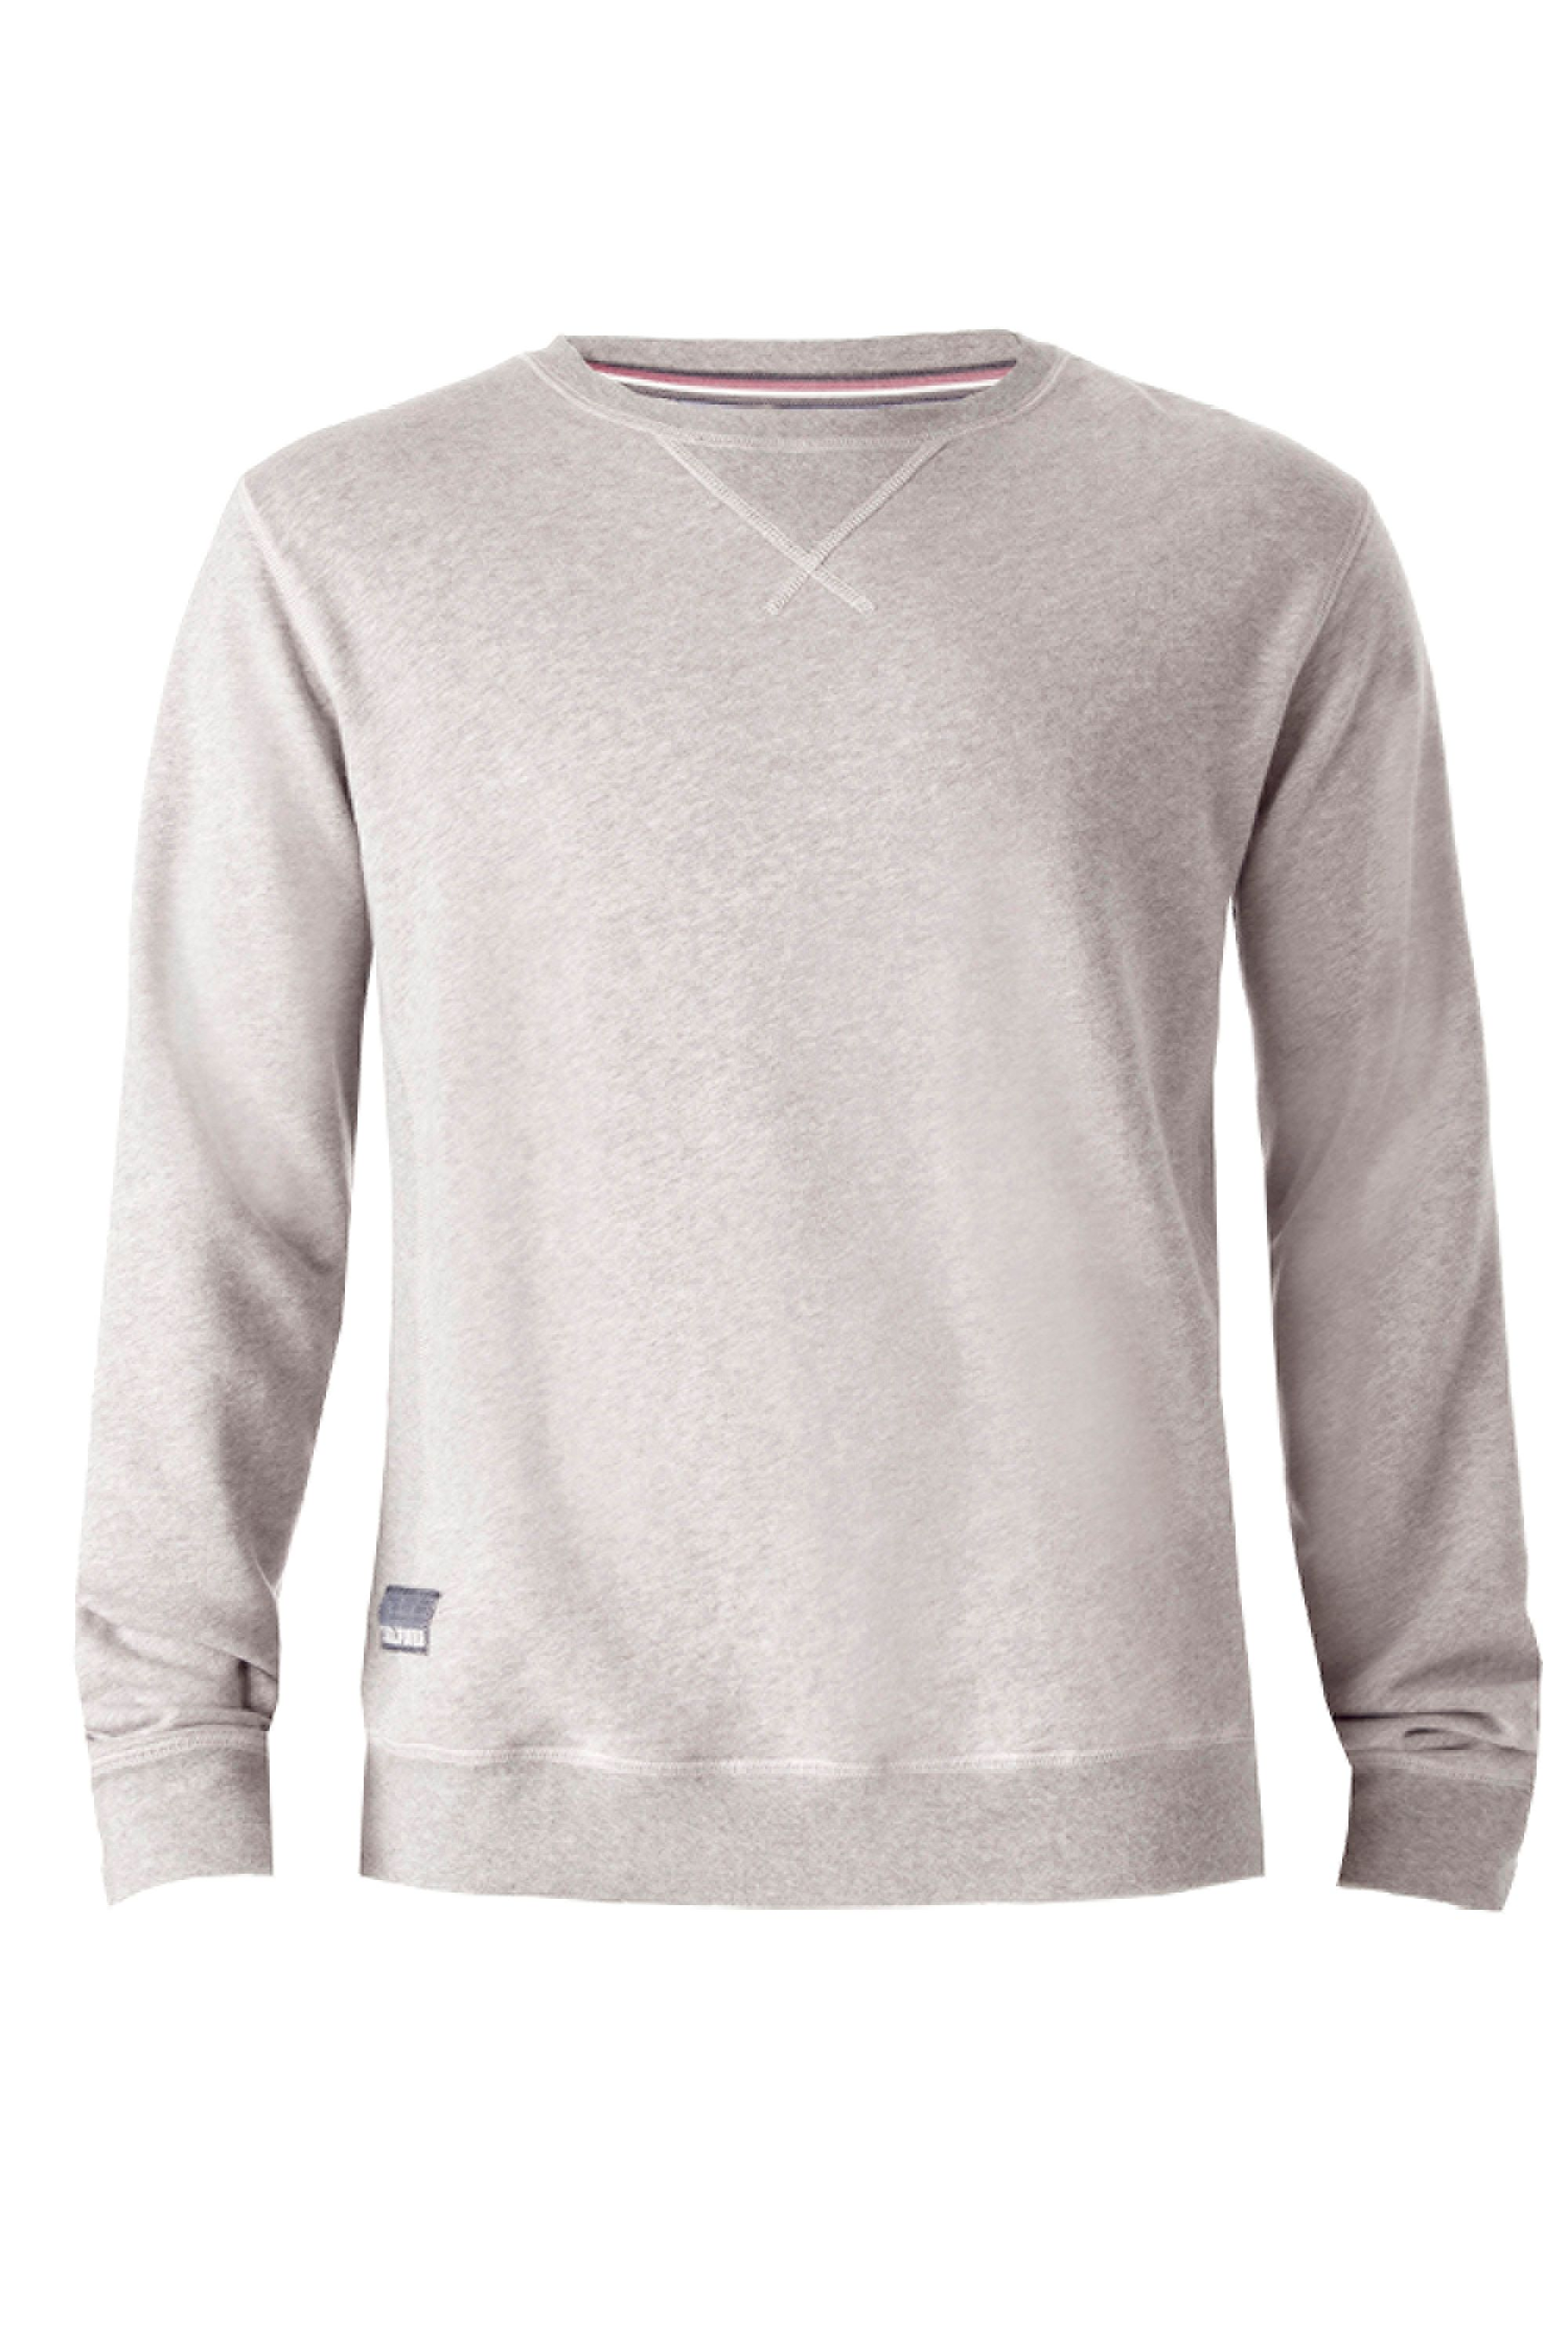 Caleb long sleeve sweatshirt